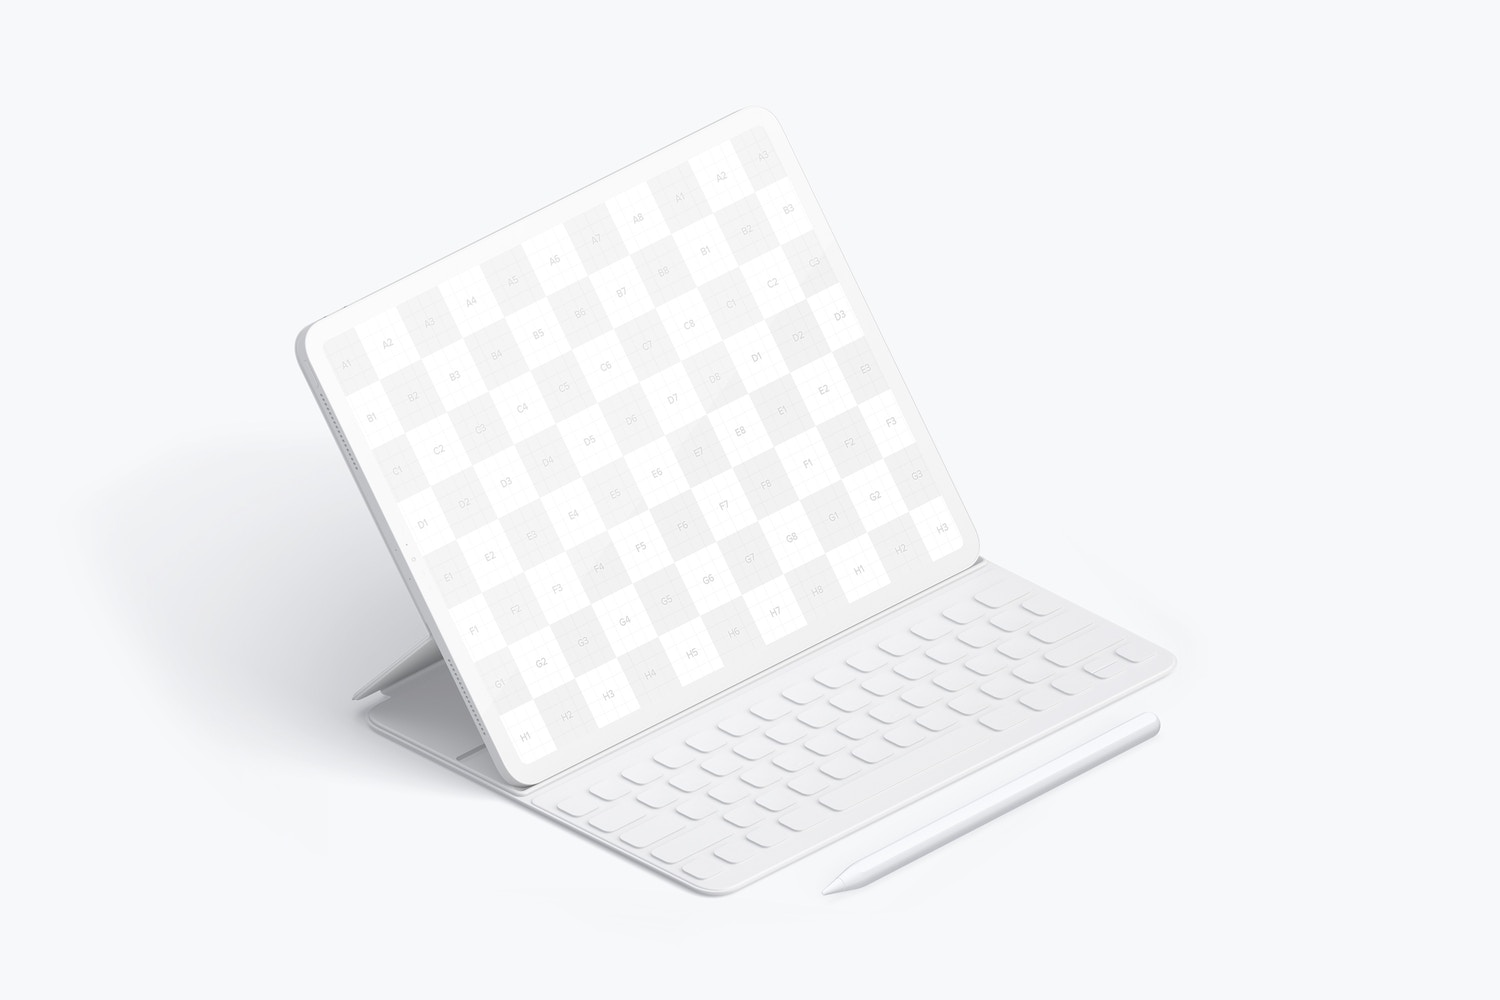 """Clay iPad Pro 12.9"""" Mockup, Isometric Left View With Keyboard"""